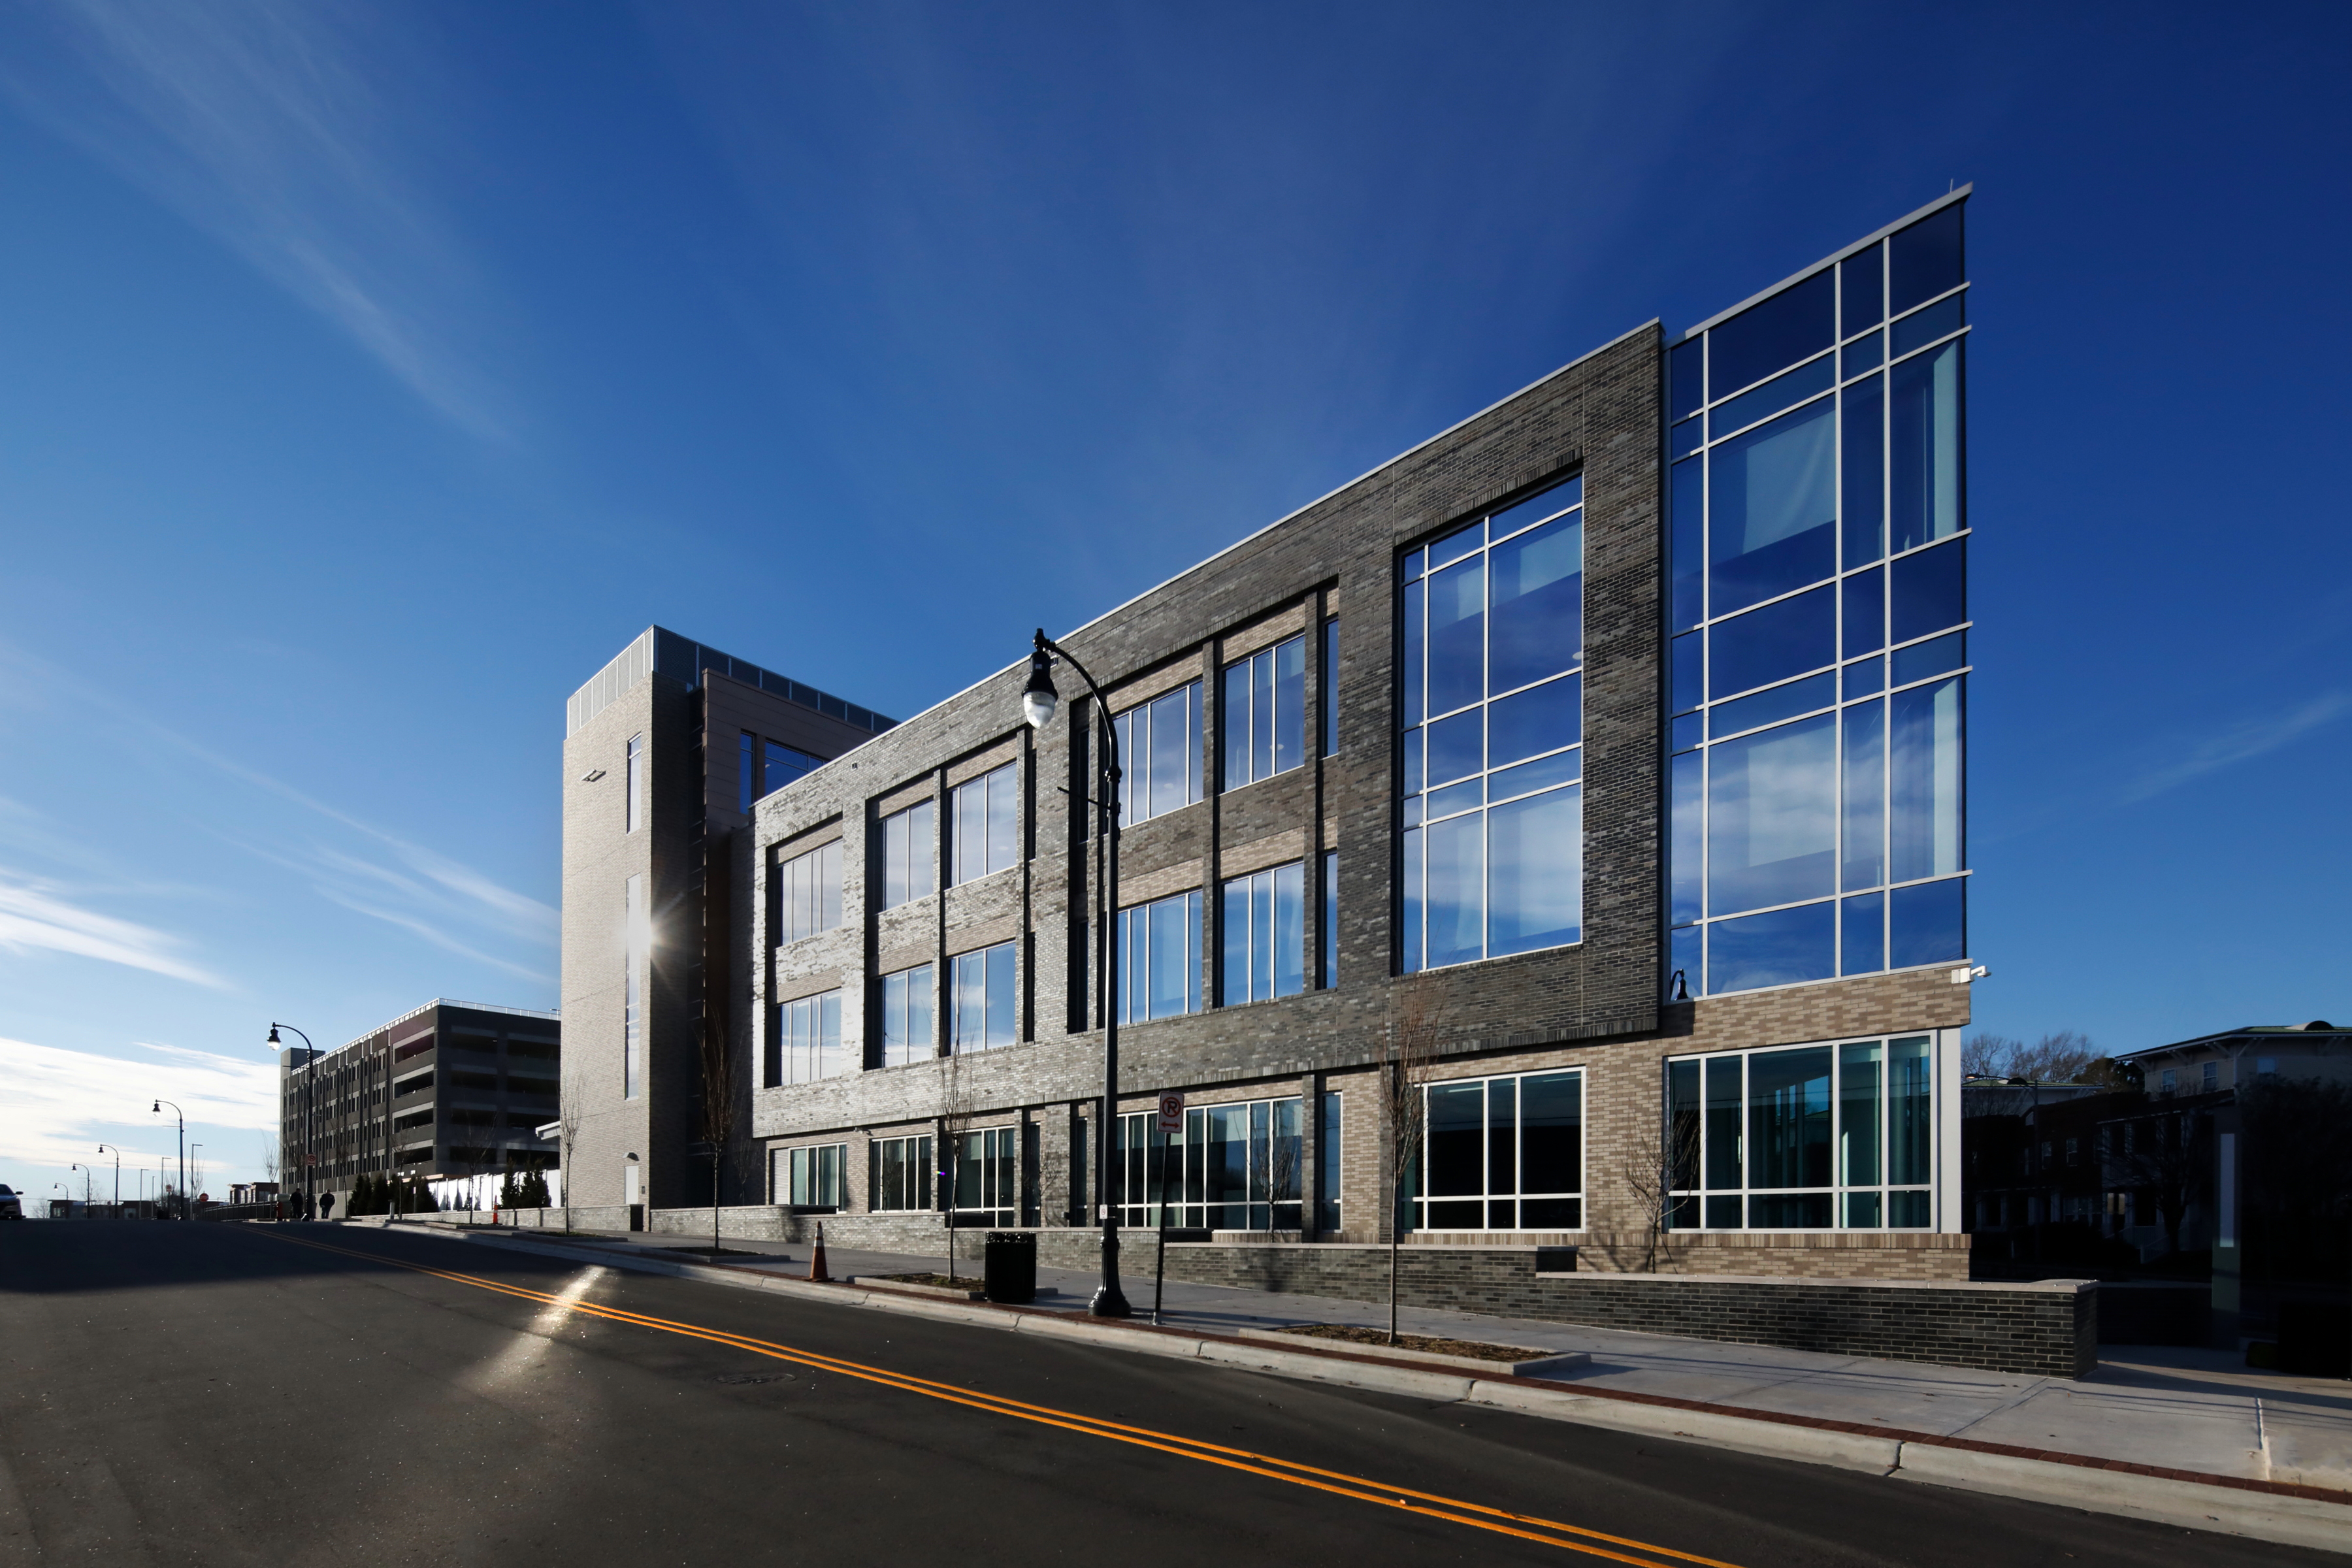 Two Recent Projects Honored with Golden Leaf Awards from Durham Appearance Commission